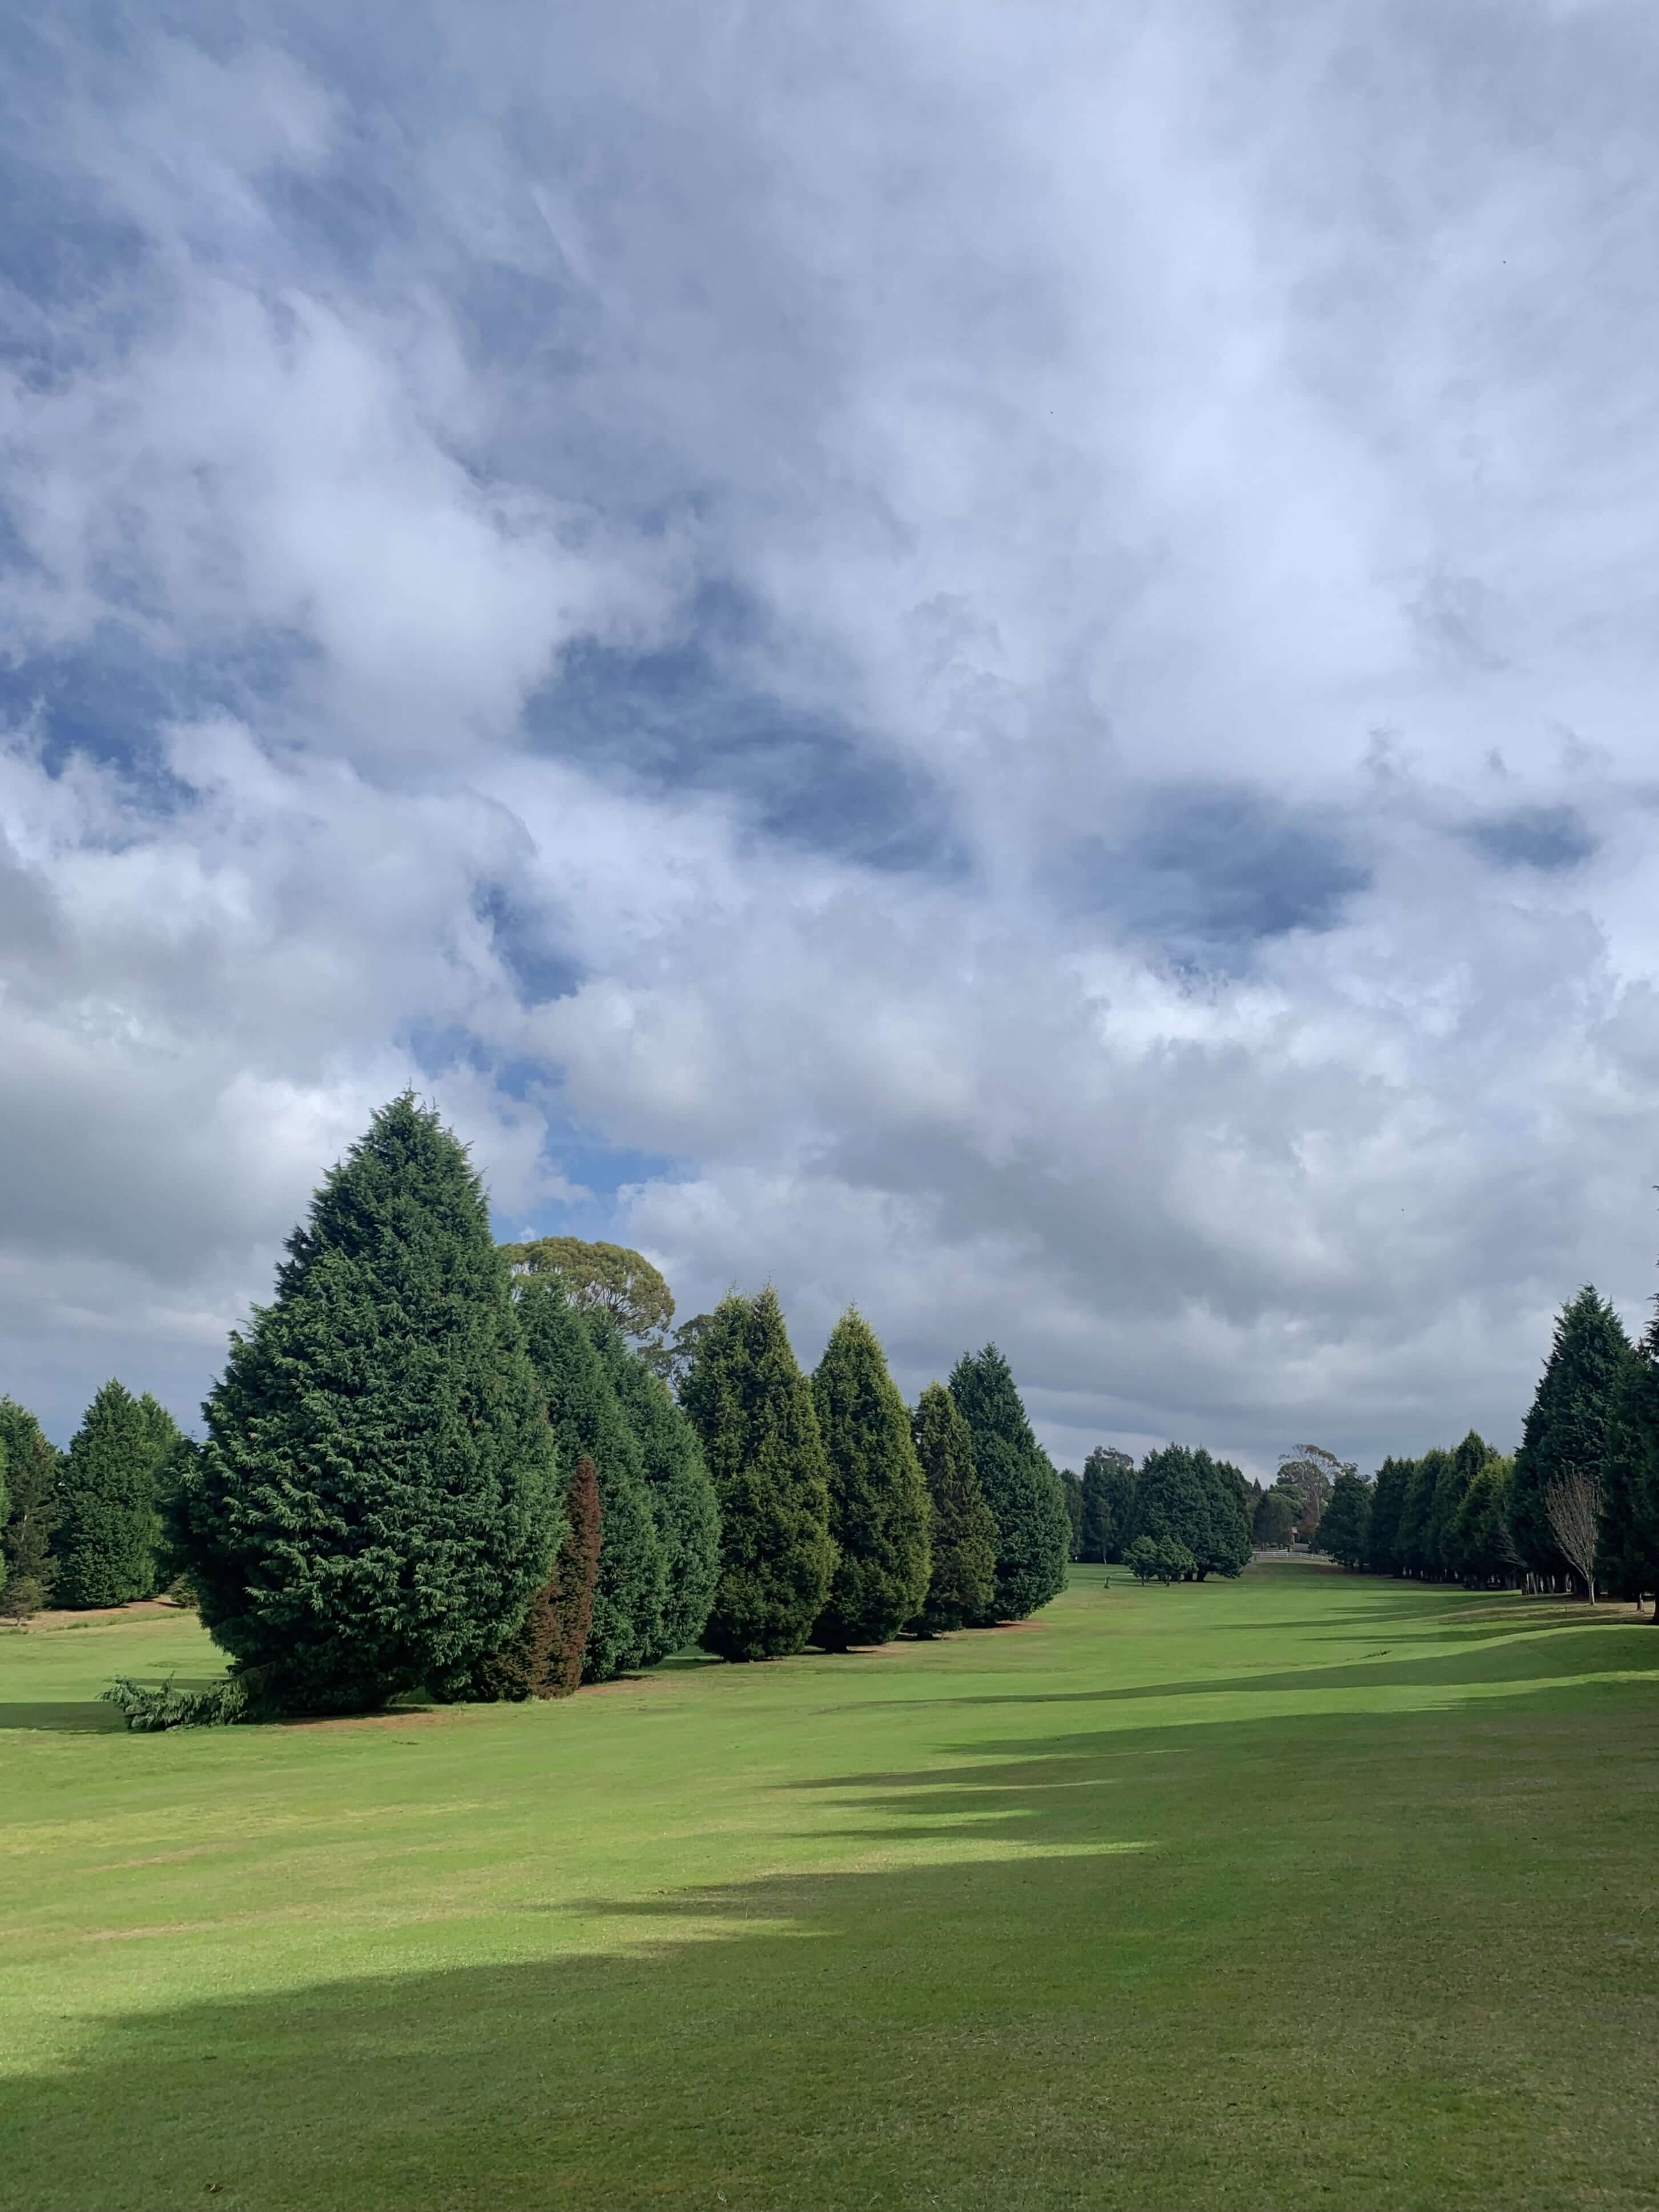 a lush golf court with a row of fern trees in the sun and shadows from nearby trees on the ground